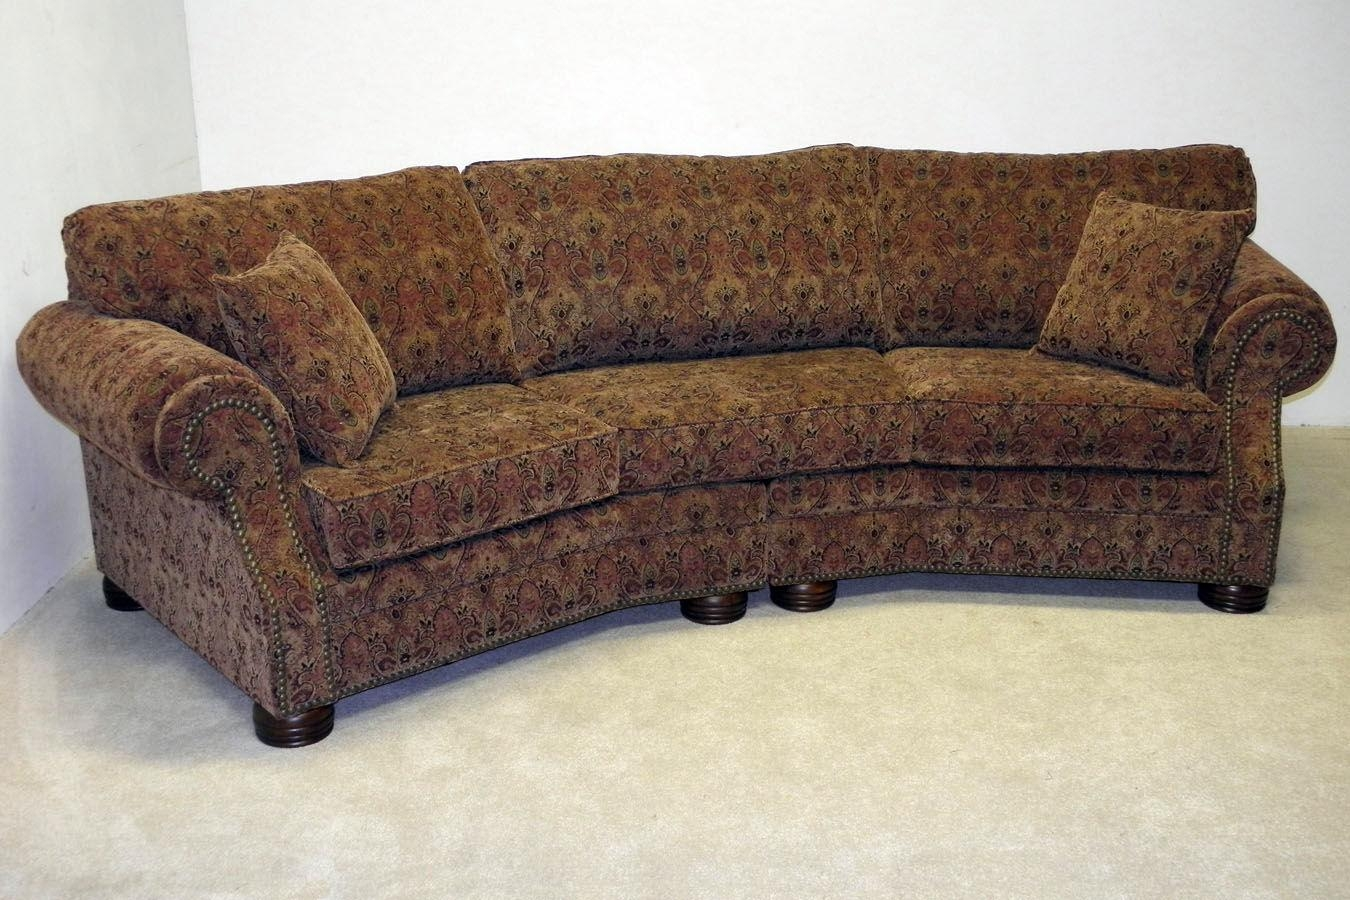 conversation sofas reviews queen sofa bed mechanism replacement sectional product riemann curved